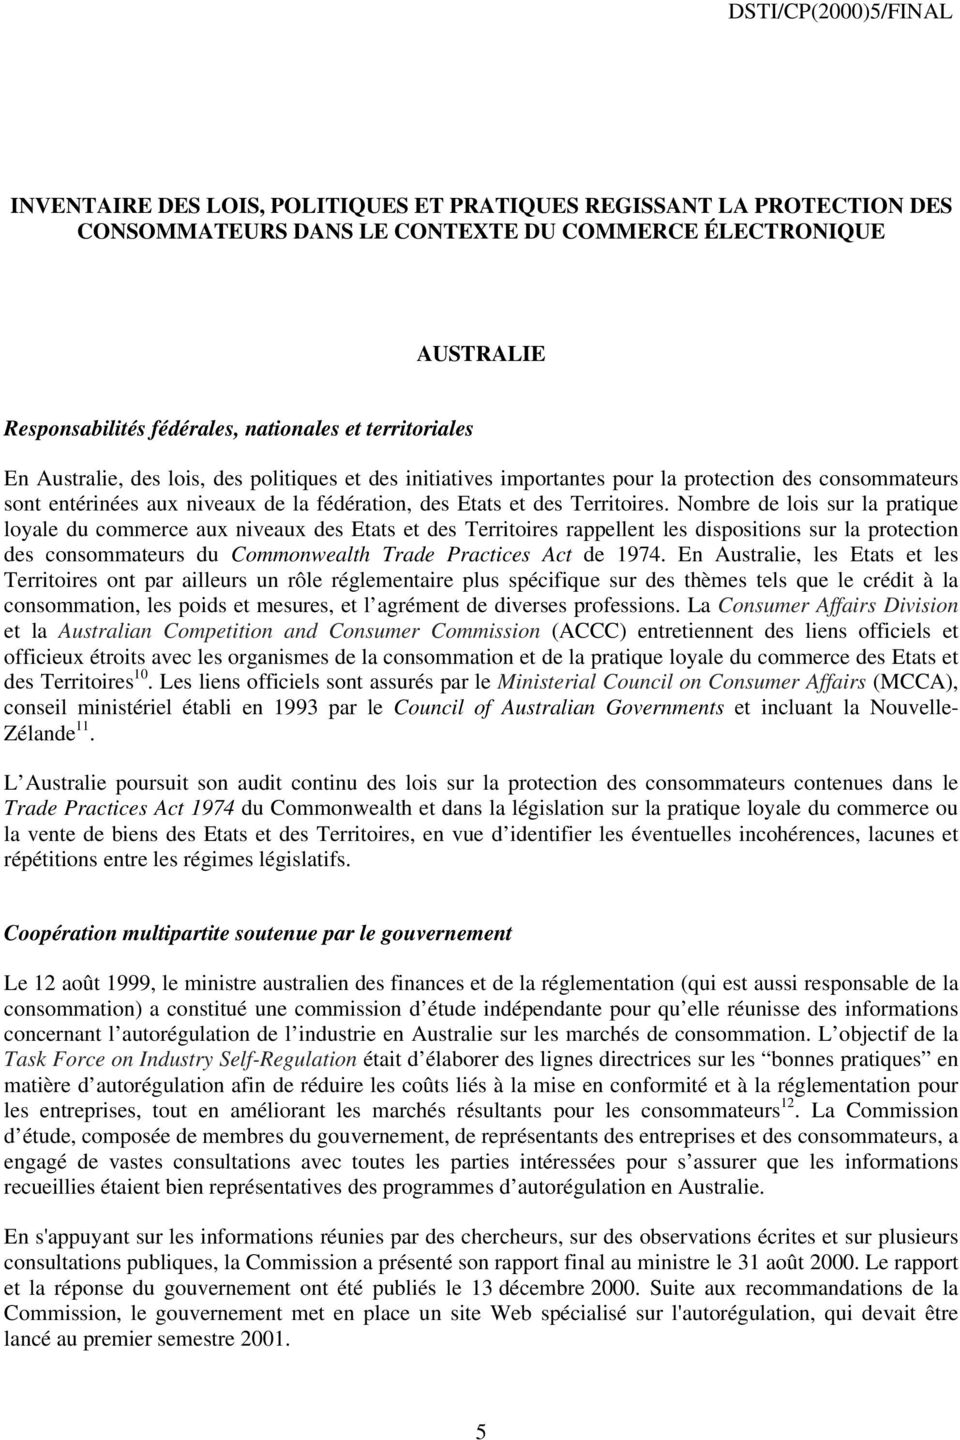 Nombre de lois sur la pratique loyale du commerce aux niveaux des Etats et des Territoires rappellent les dispositions sur la protection des consommateurs du Commonwealth Trade Practices Act de 1974.